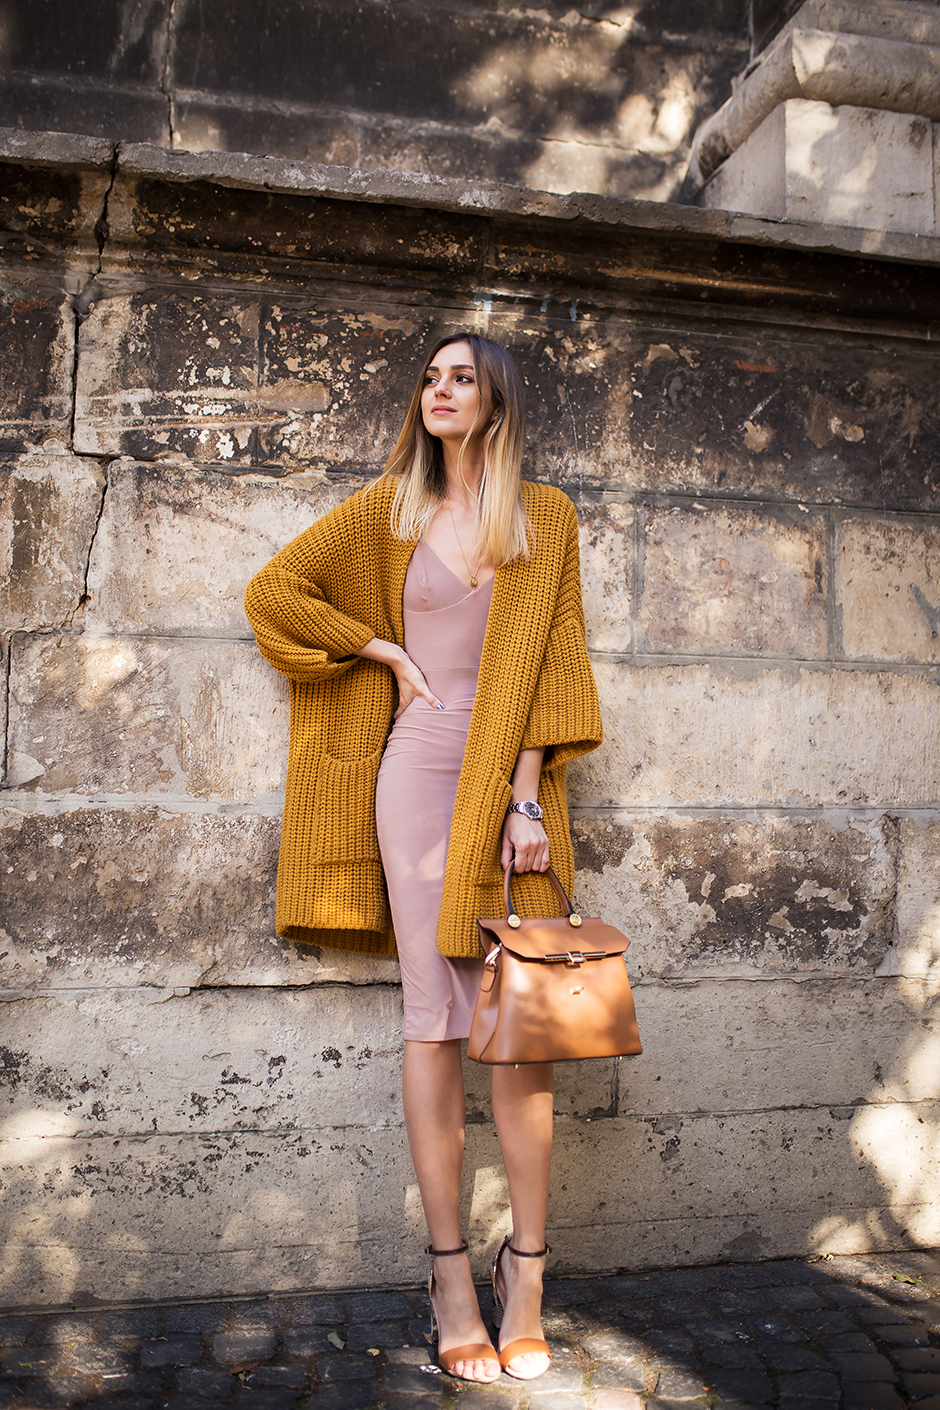 beige-bodycon-nude-dress-outfit-street-style